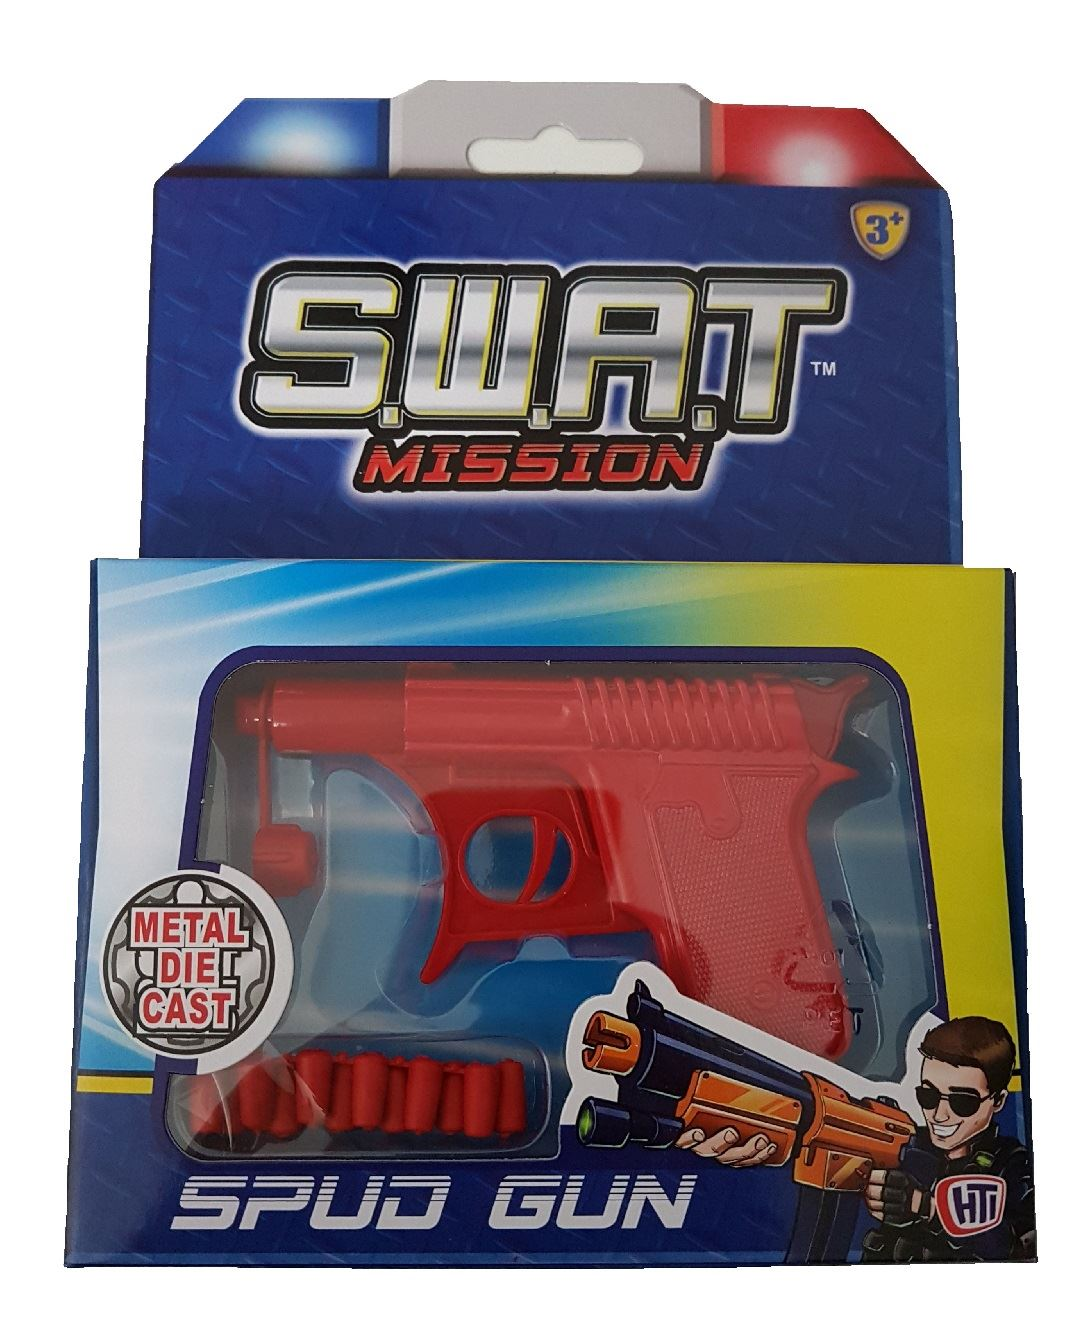 S.w.a.t Mission Spud Gun (red) #31752